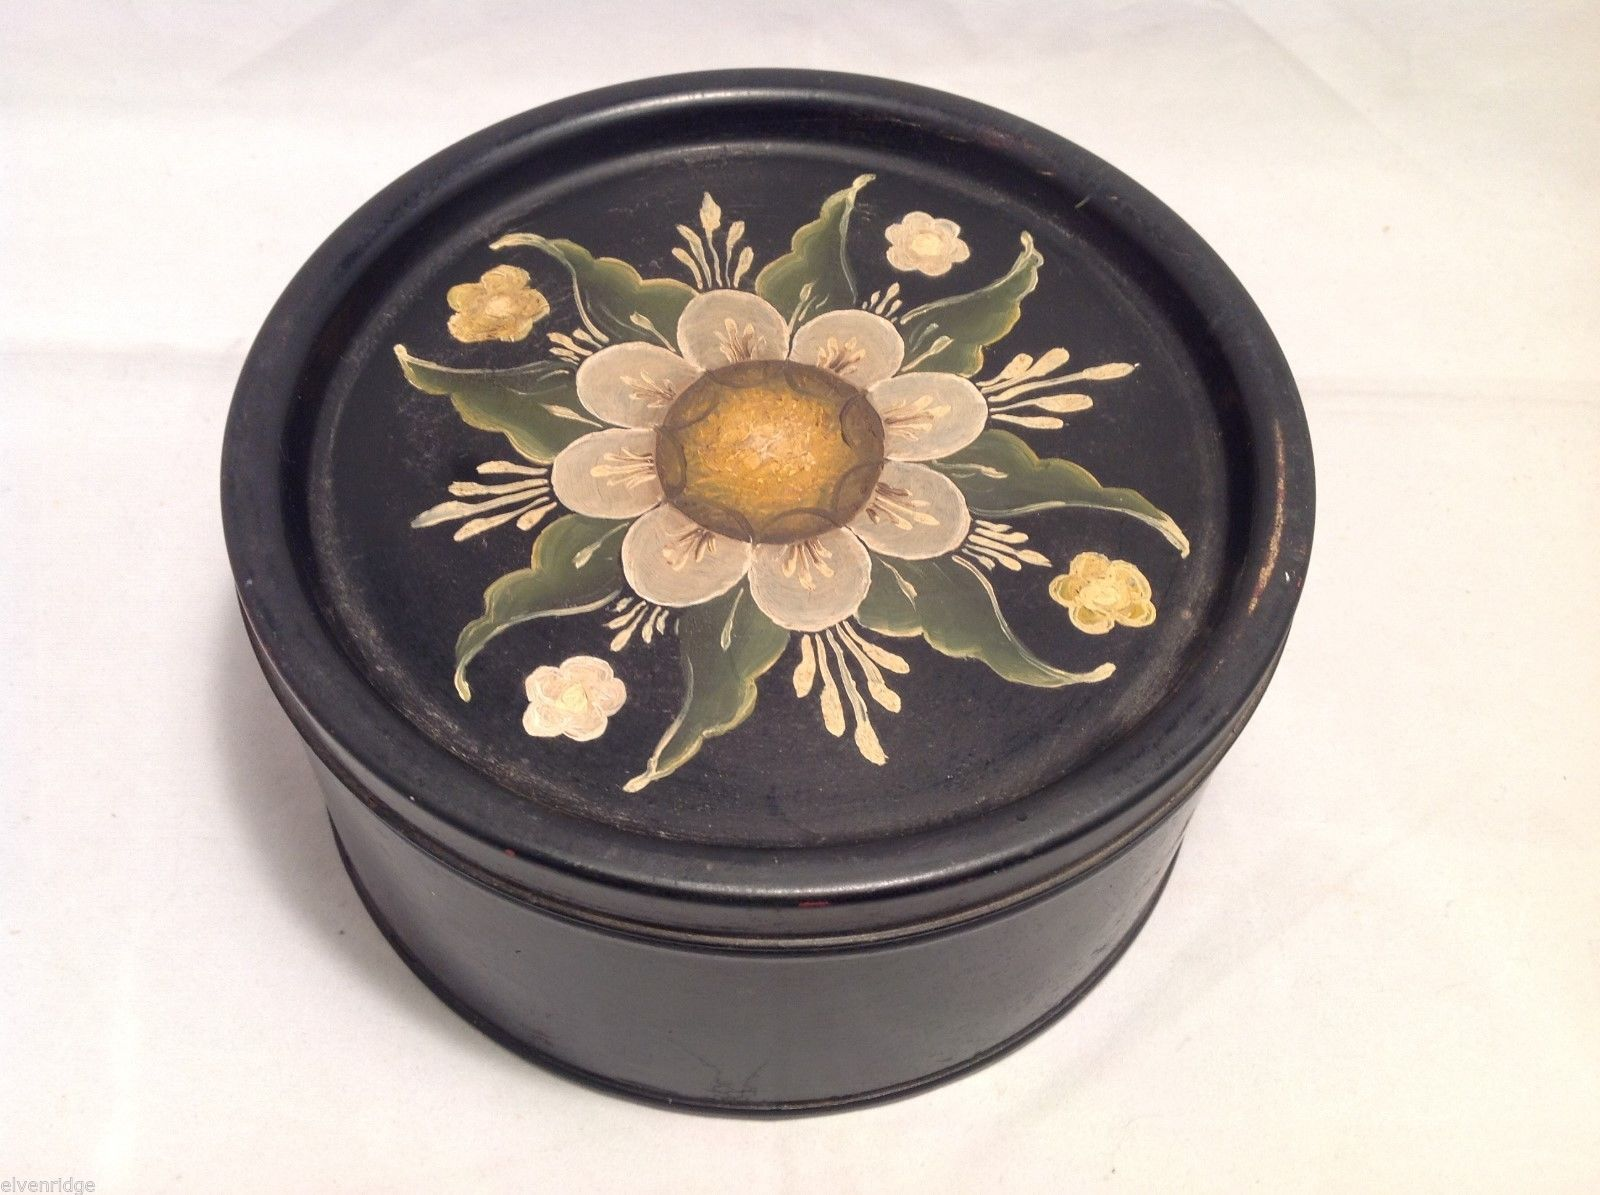 Toleware Tin and cover, black with hand painted flowers